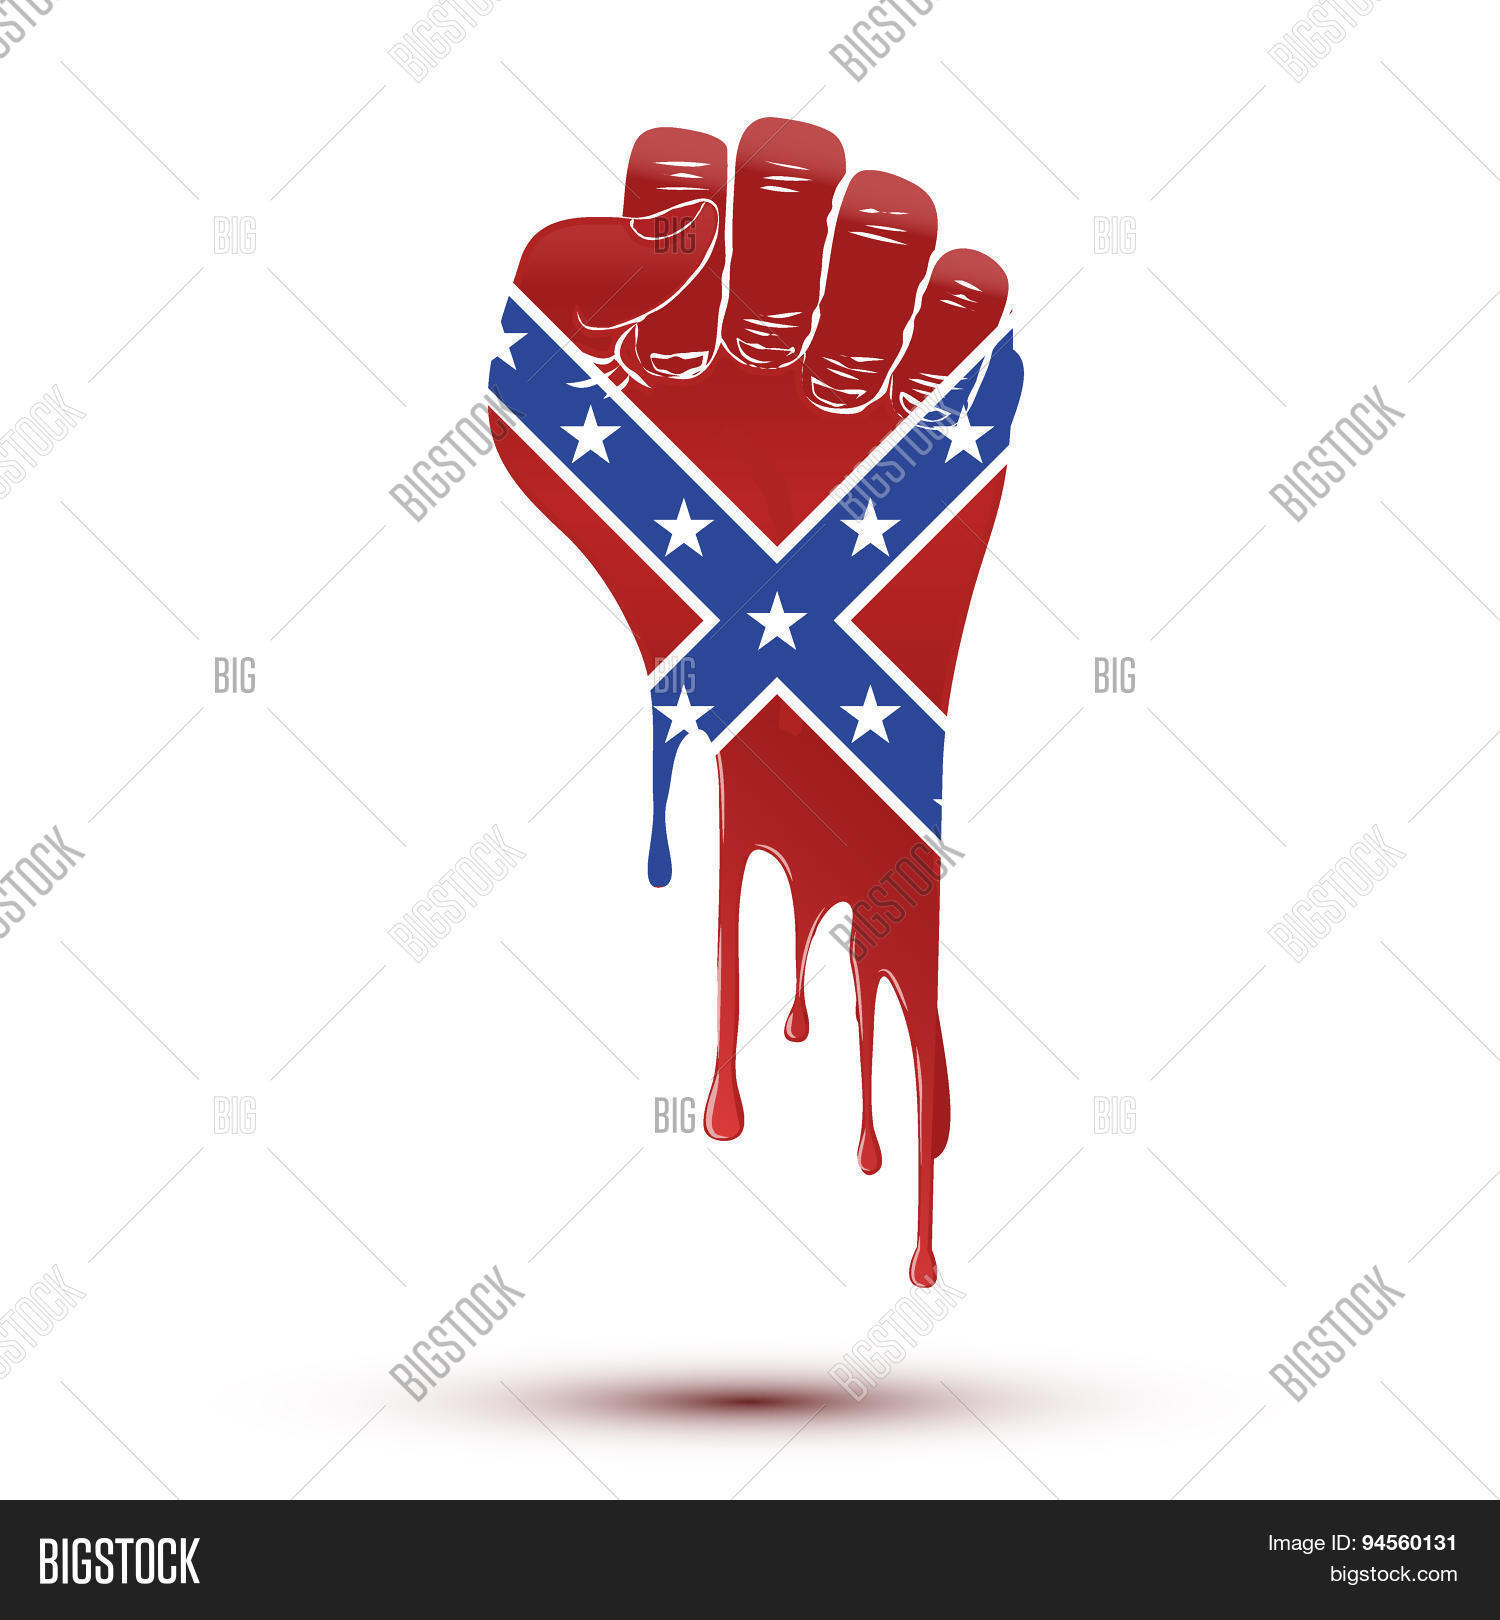 Symbol blood flow clenched fist vector photo bigstock symbol blood flow of clenched fist held in protest with confederate flag biocorpaavc